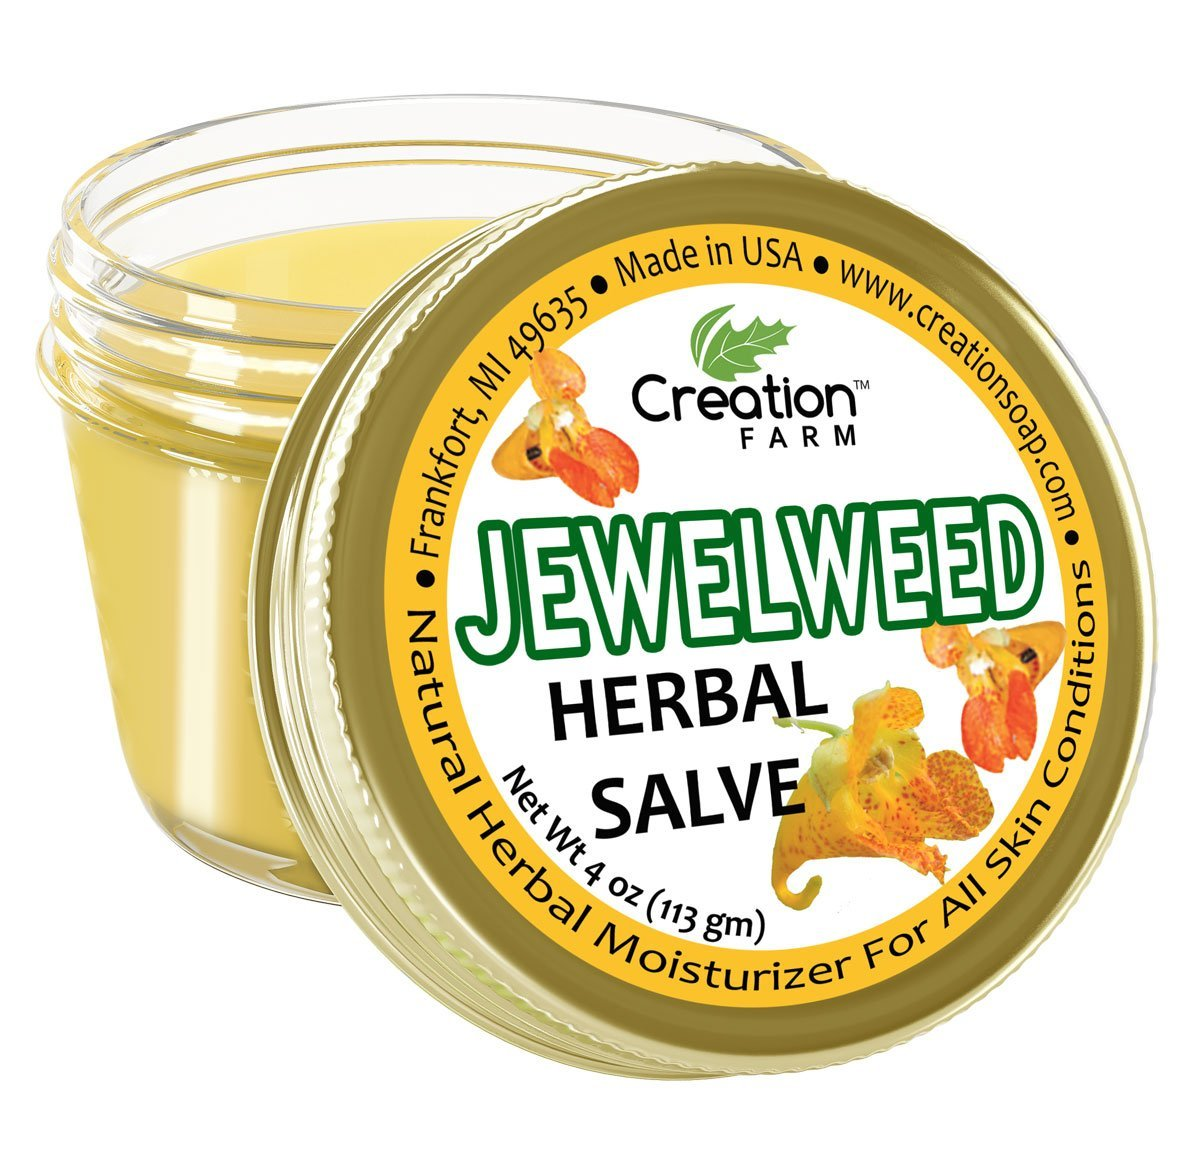 Creation Farm Jewelweed Balm, Poison Ivy Remedy, Herbal Tea Tree Salve Jar 4 oz Sensitive Skin Treatment Helps Tattoo's, Soothes Rashes, Skin Fungus, No Gluten, No Parabens, No Soy, No GMO by Creation Farm